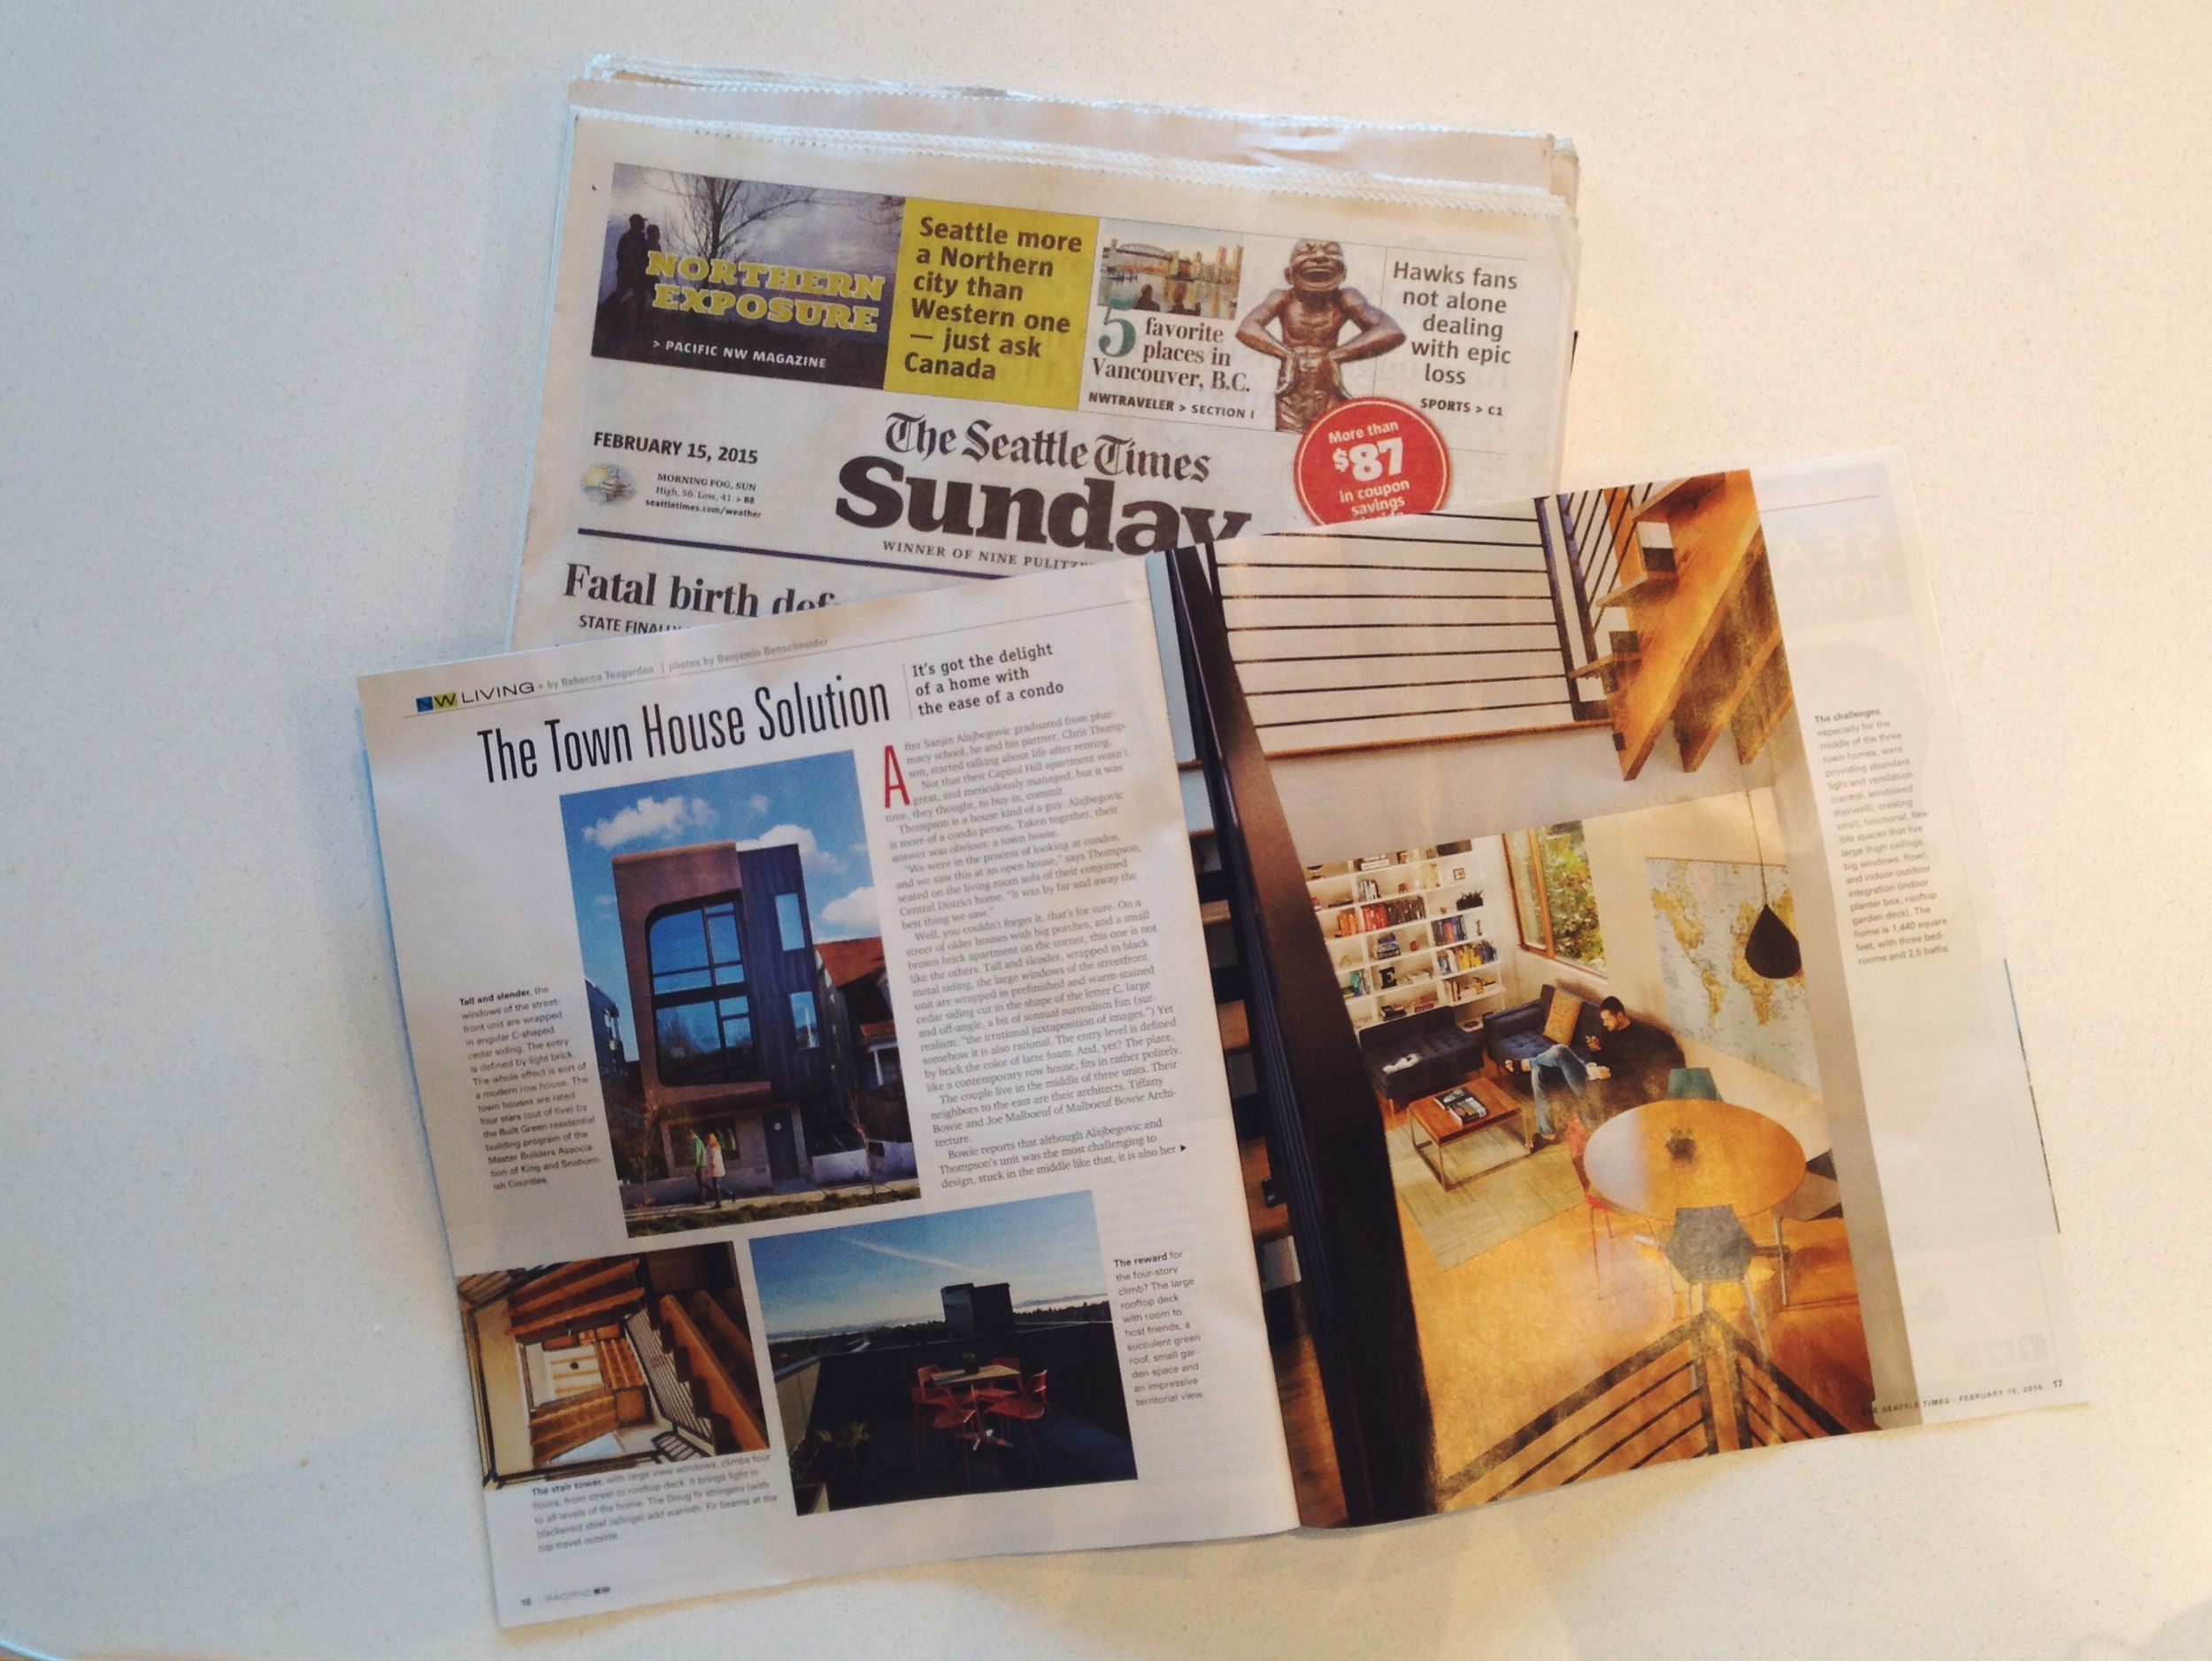 One wanted a house, the other a condo: contemporary town house works for both   Pacific NW Magazine / Seattle Times  February 15 2014